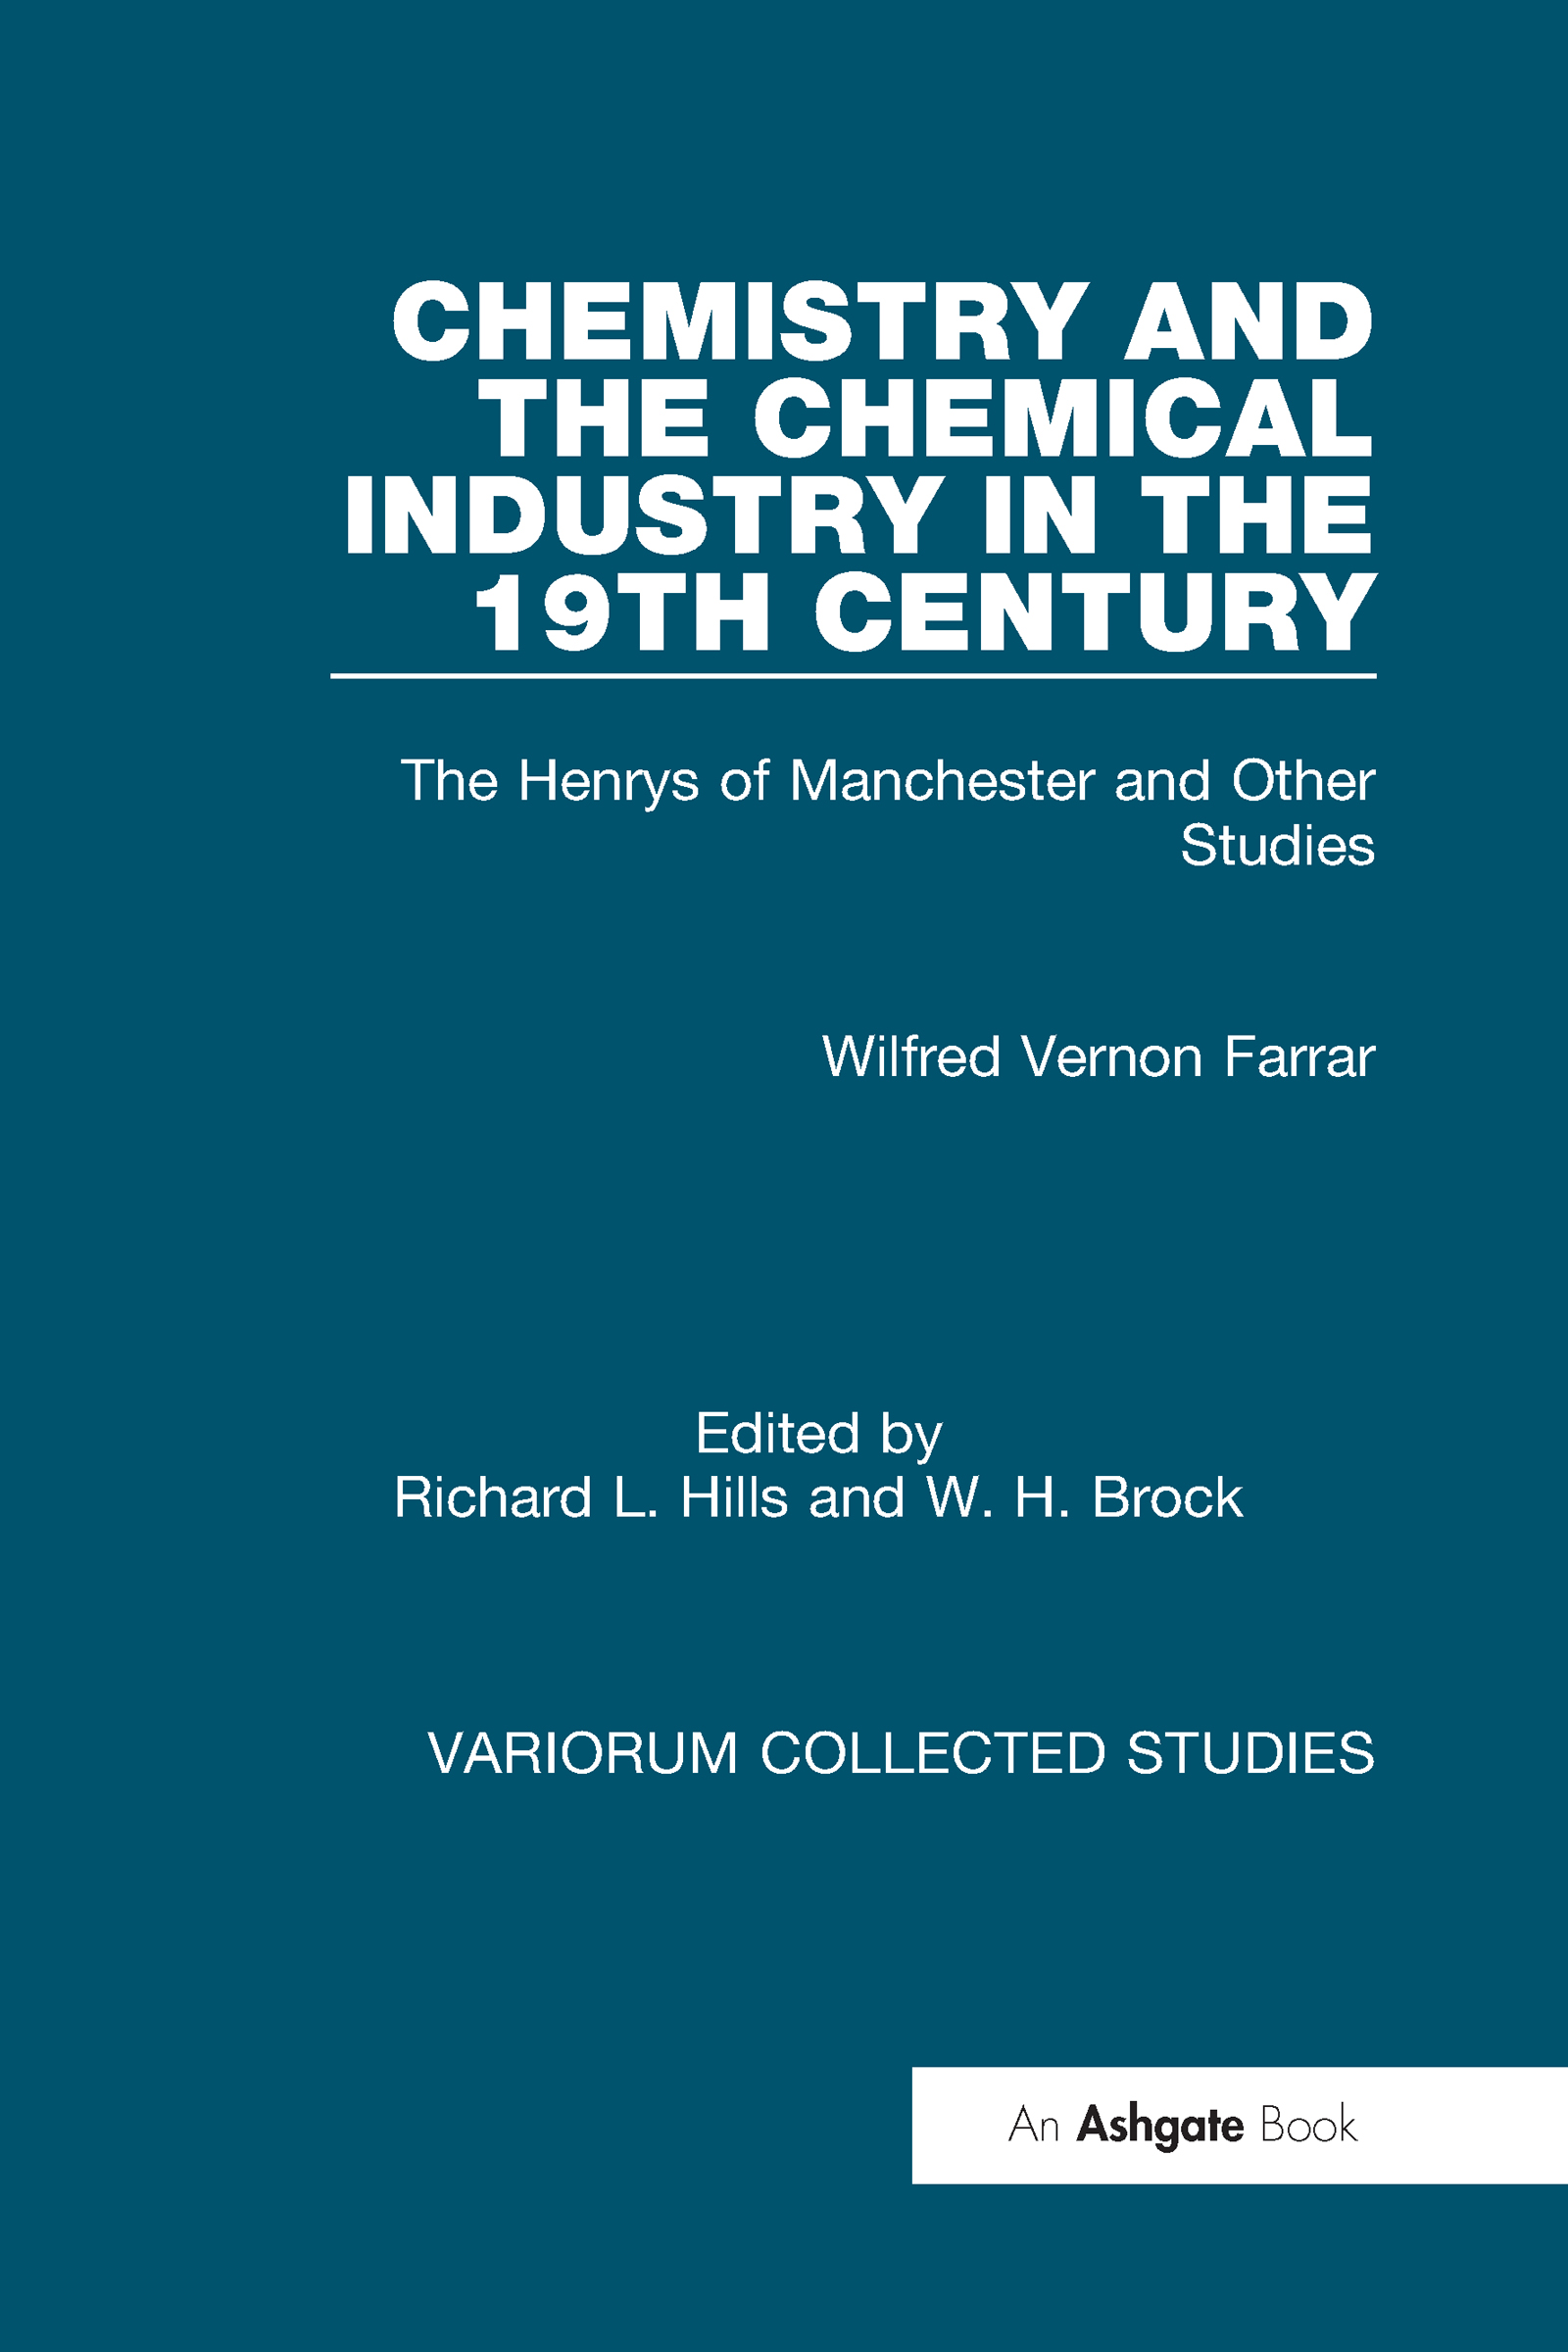 Chemistry and the Chemical Industry in the 19th Century: The Henrys of Manchester and Other Studies book cover